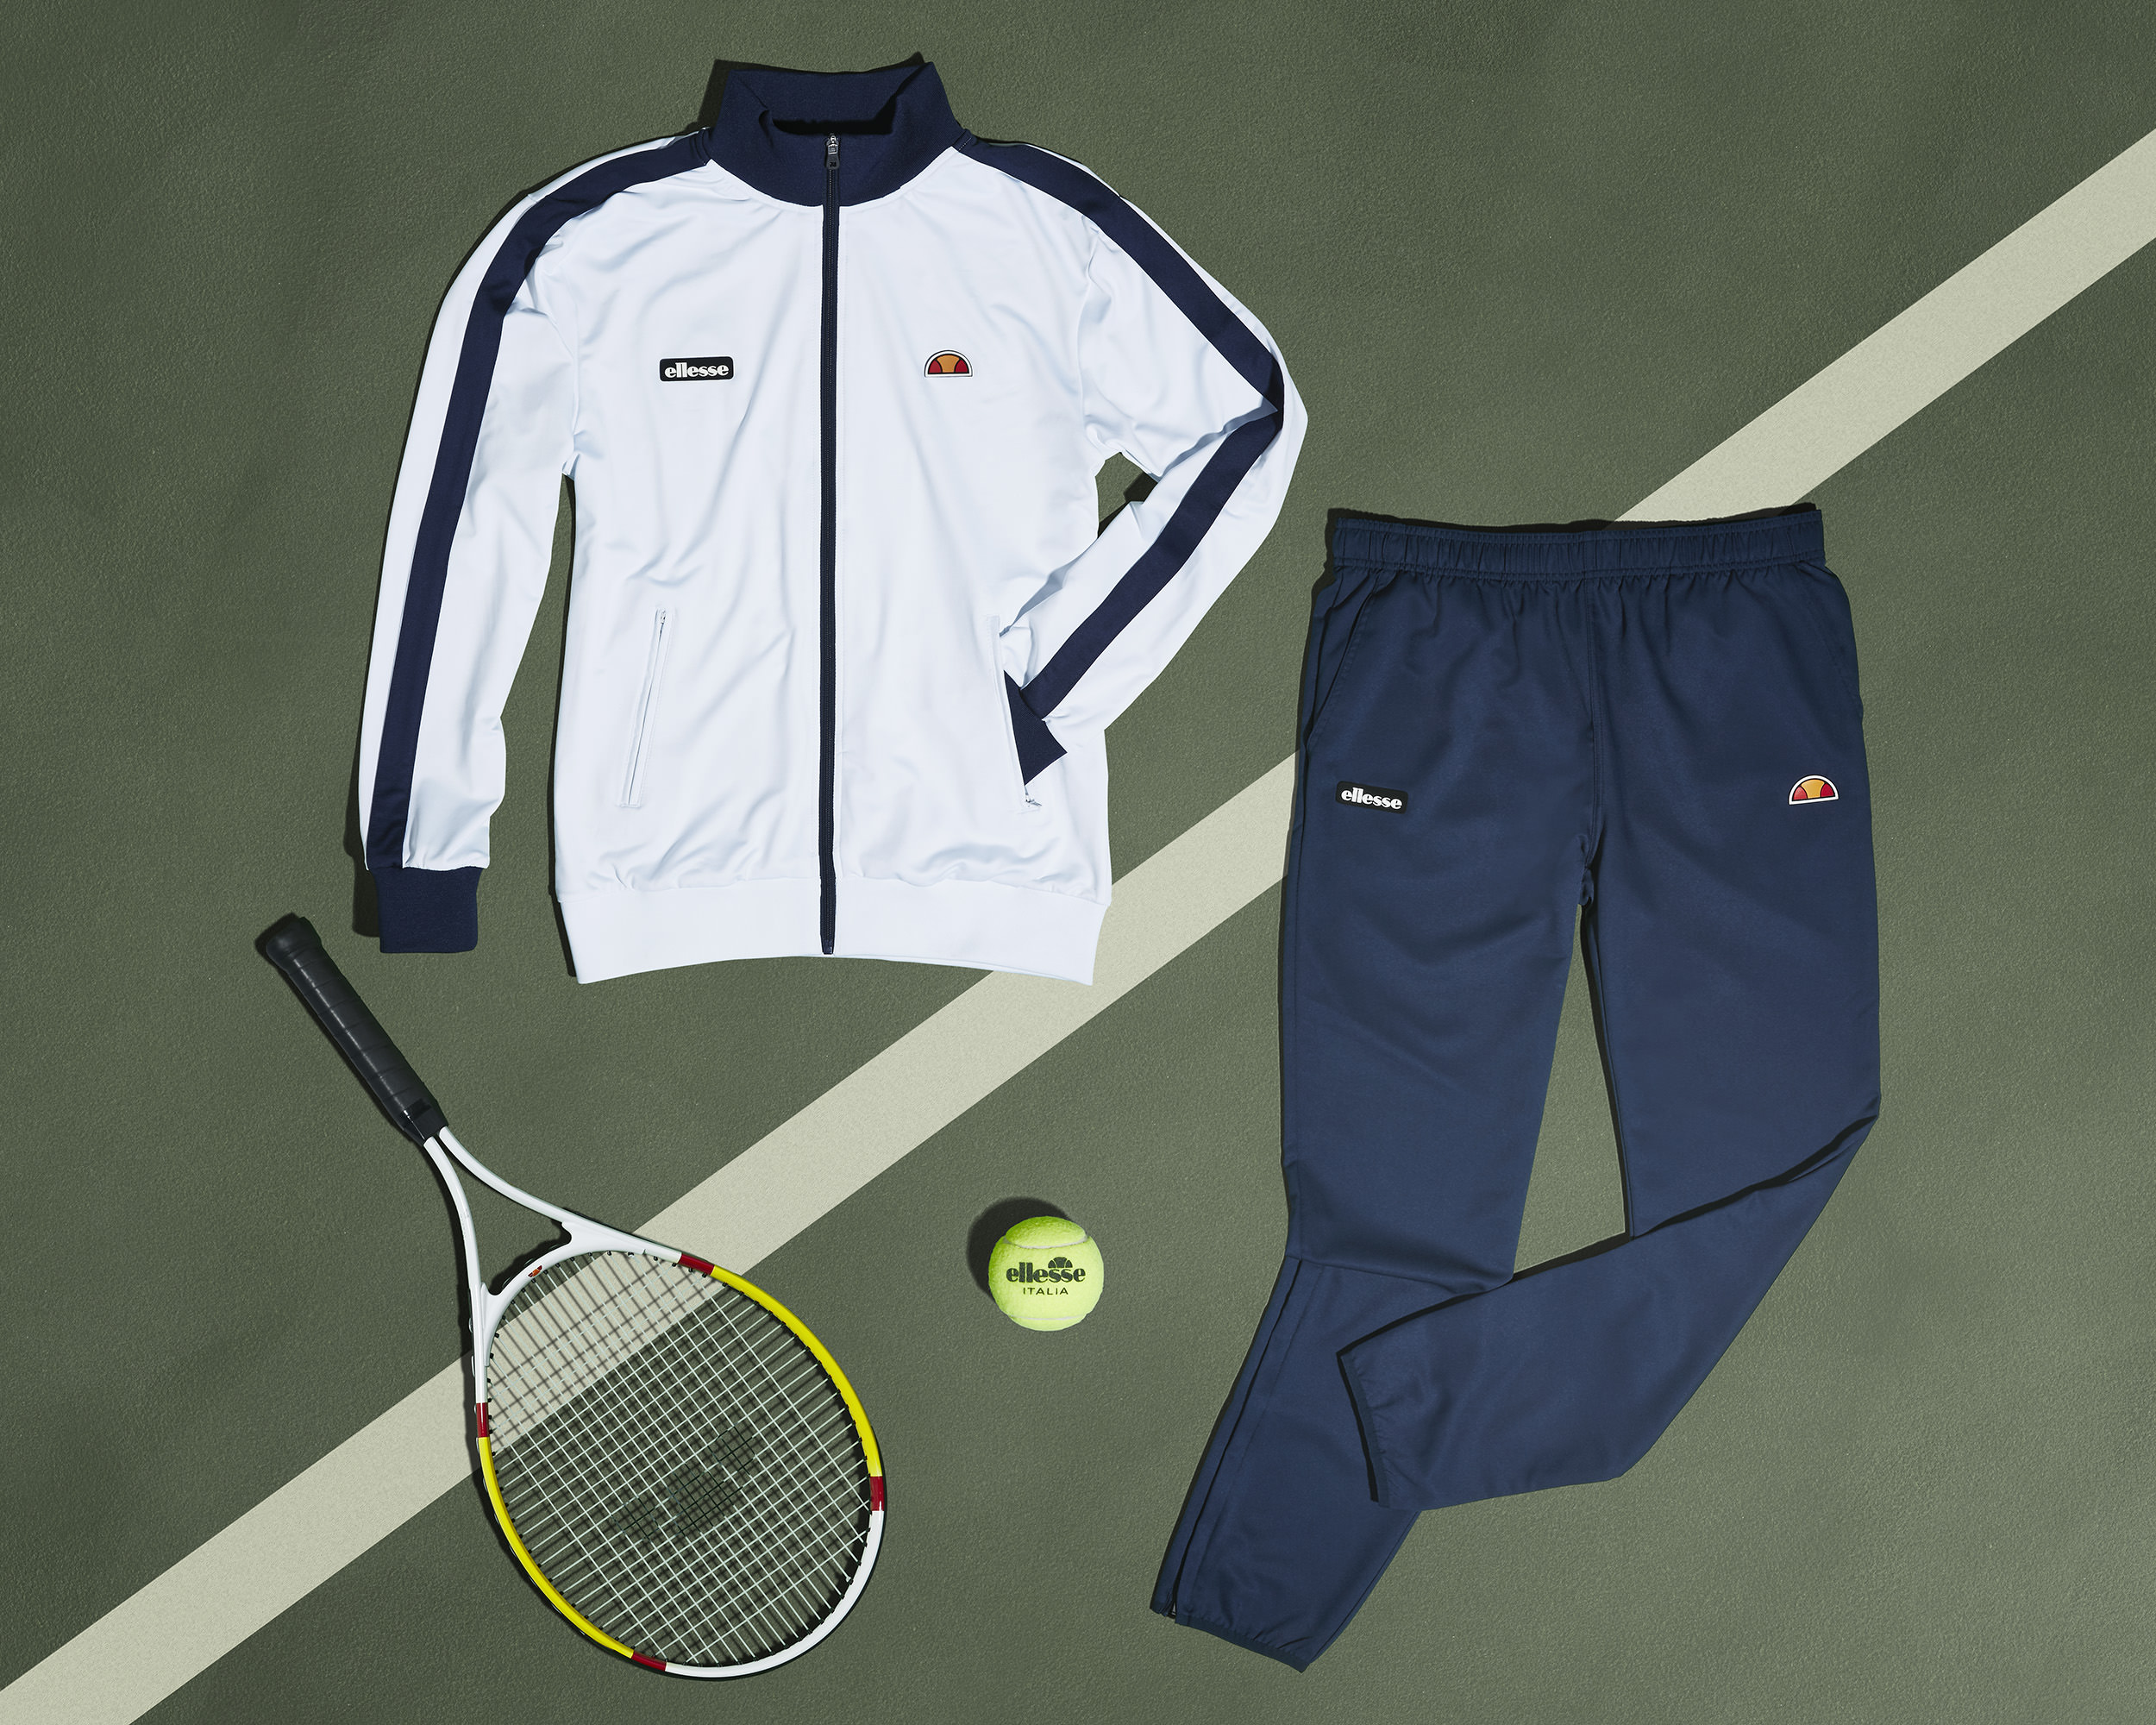 ellesse_outfit03